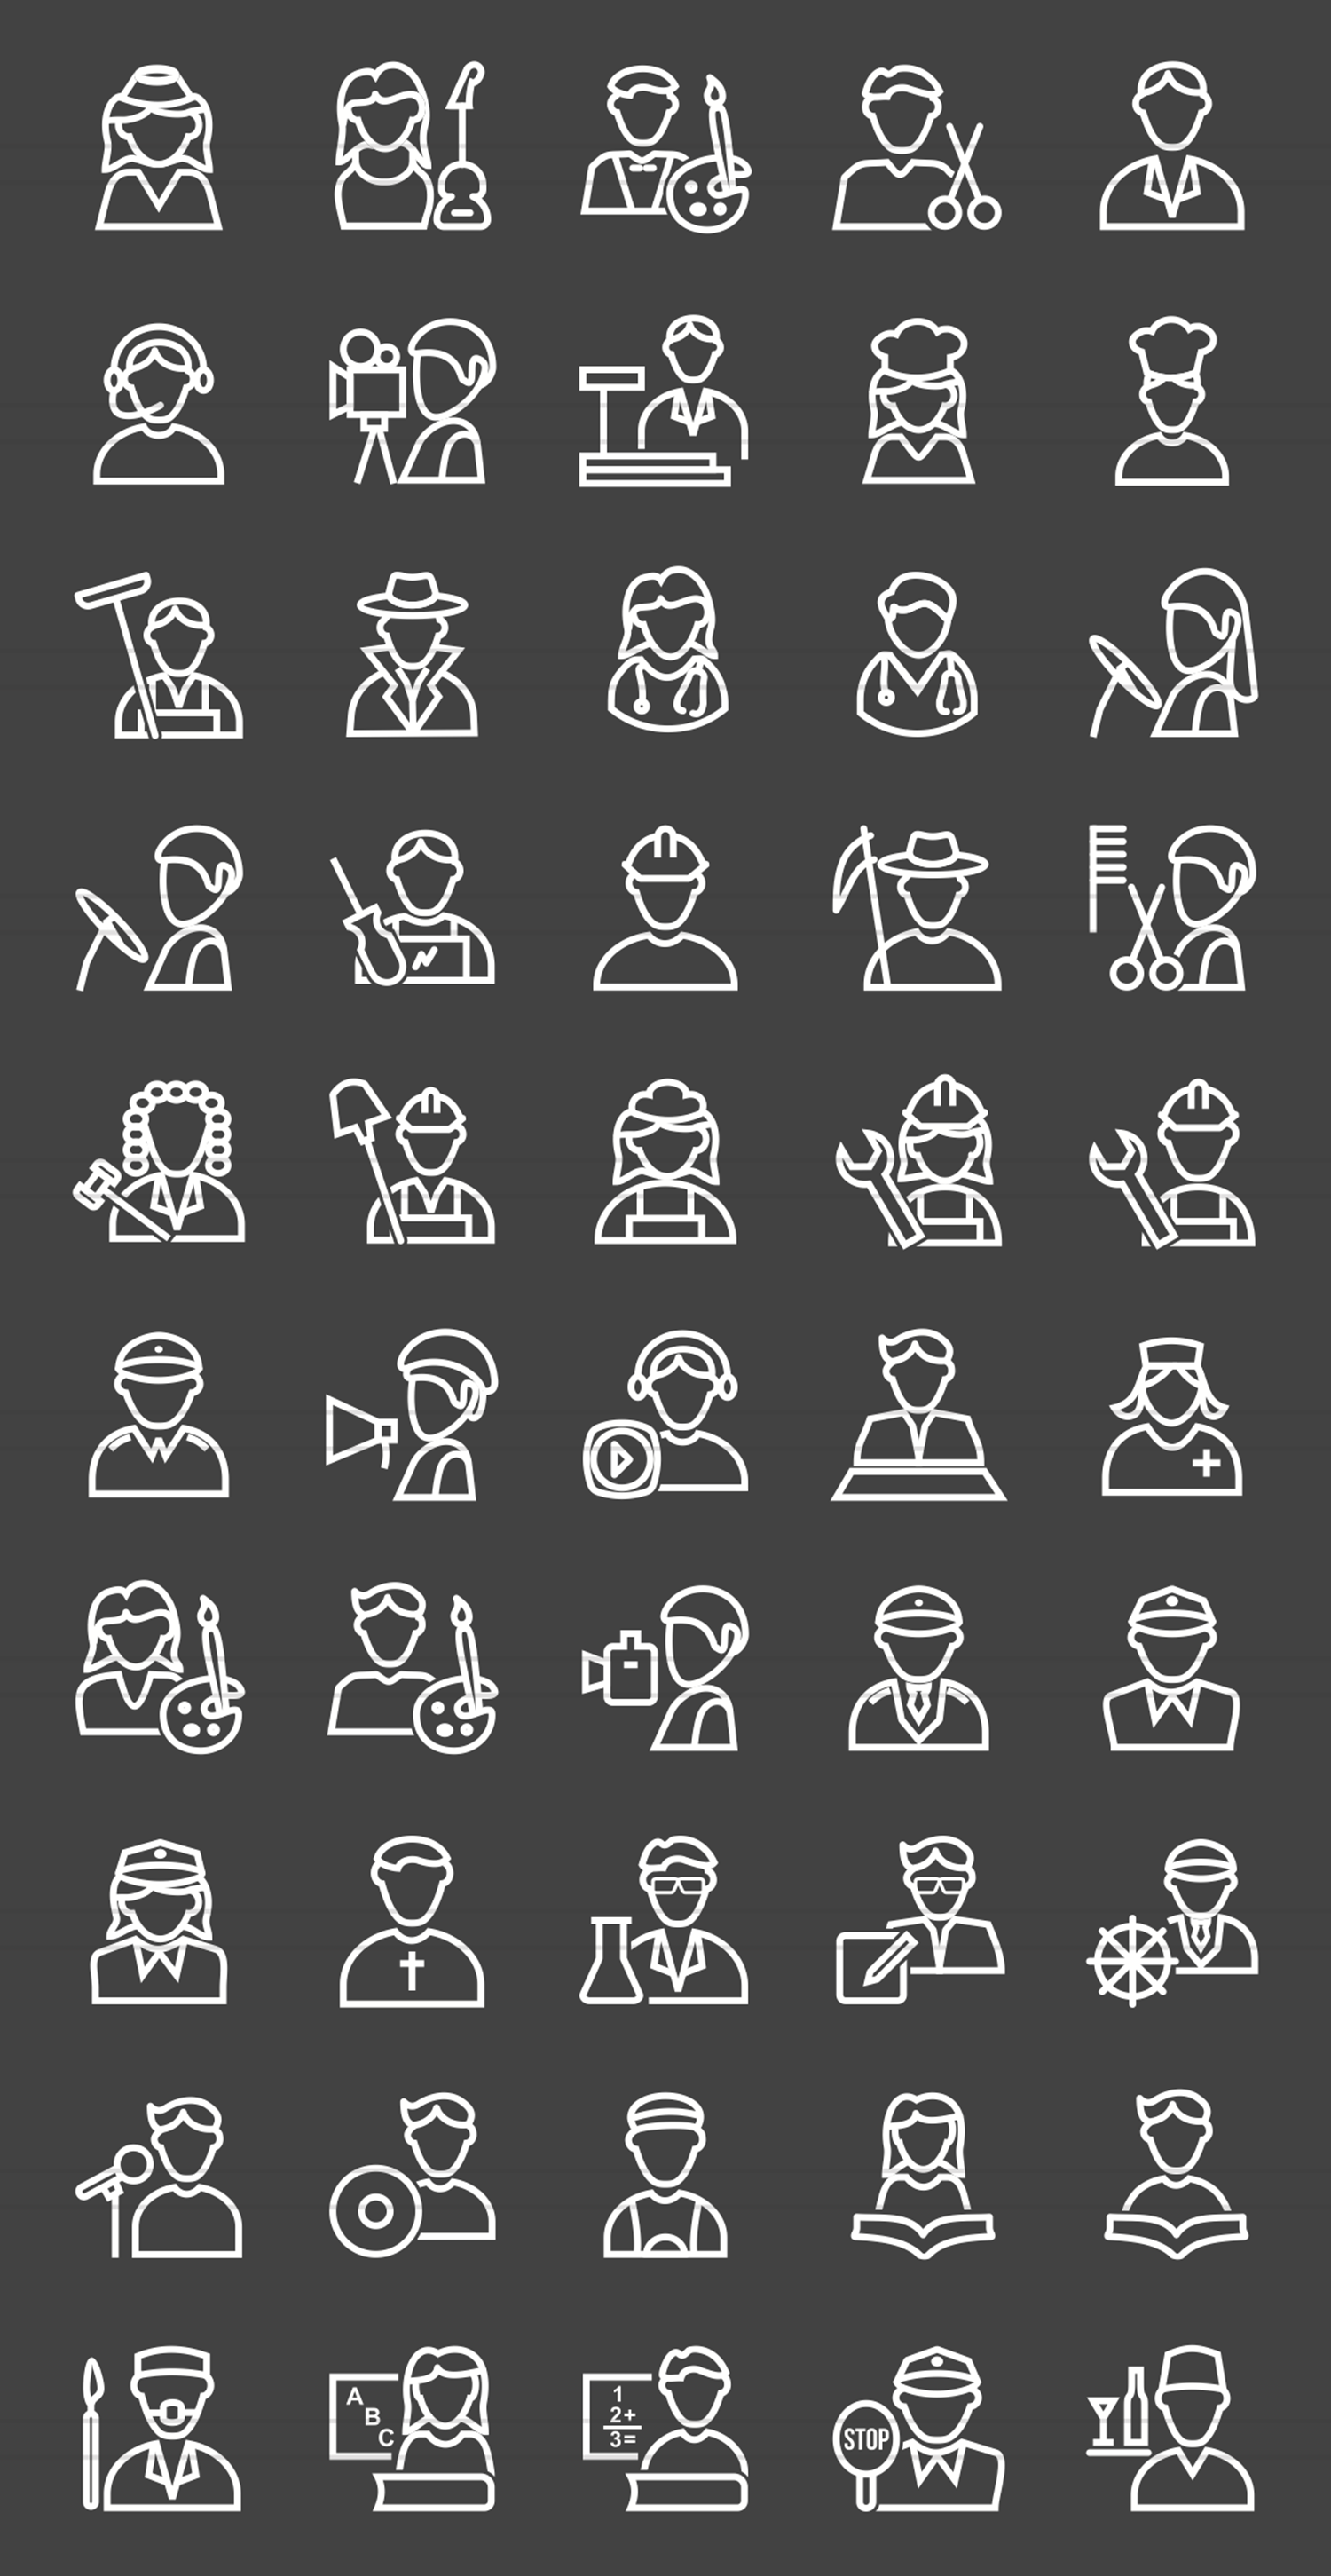 50 Professionals Line Inverted Icons example image 2